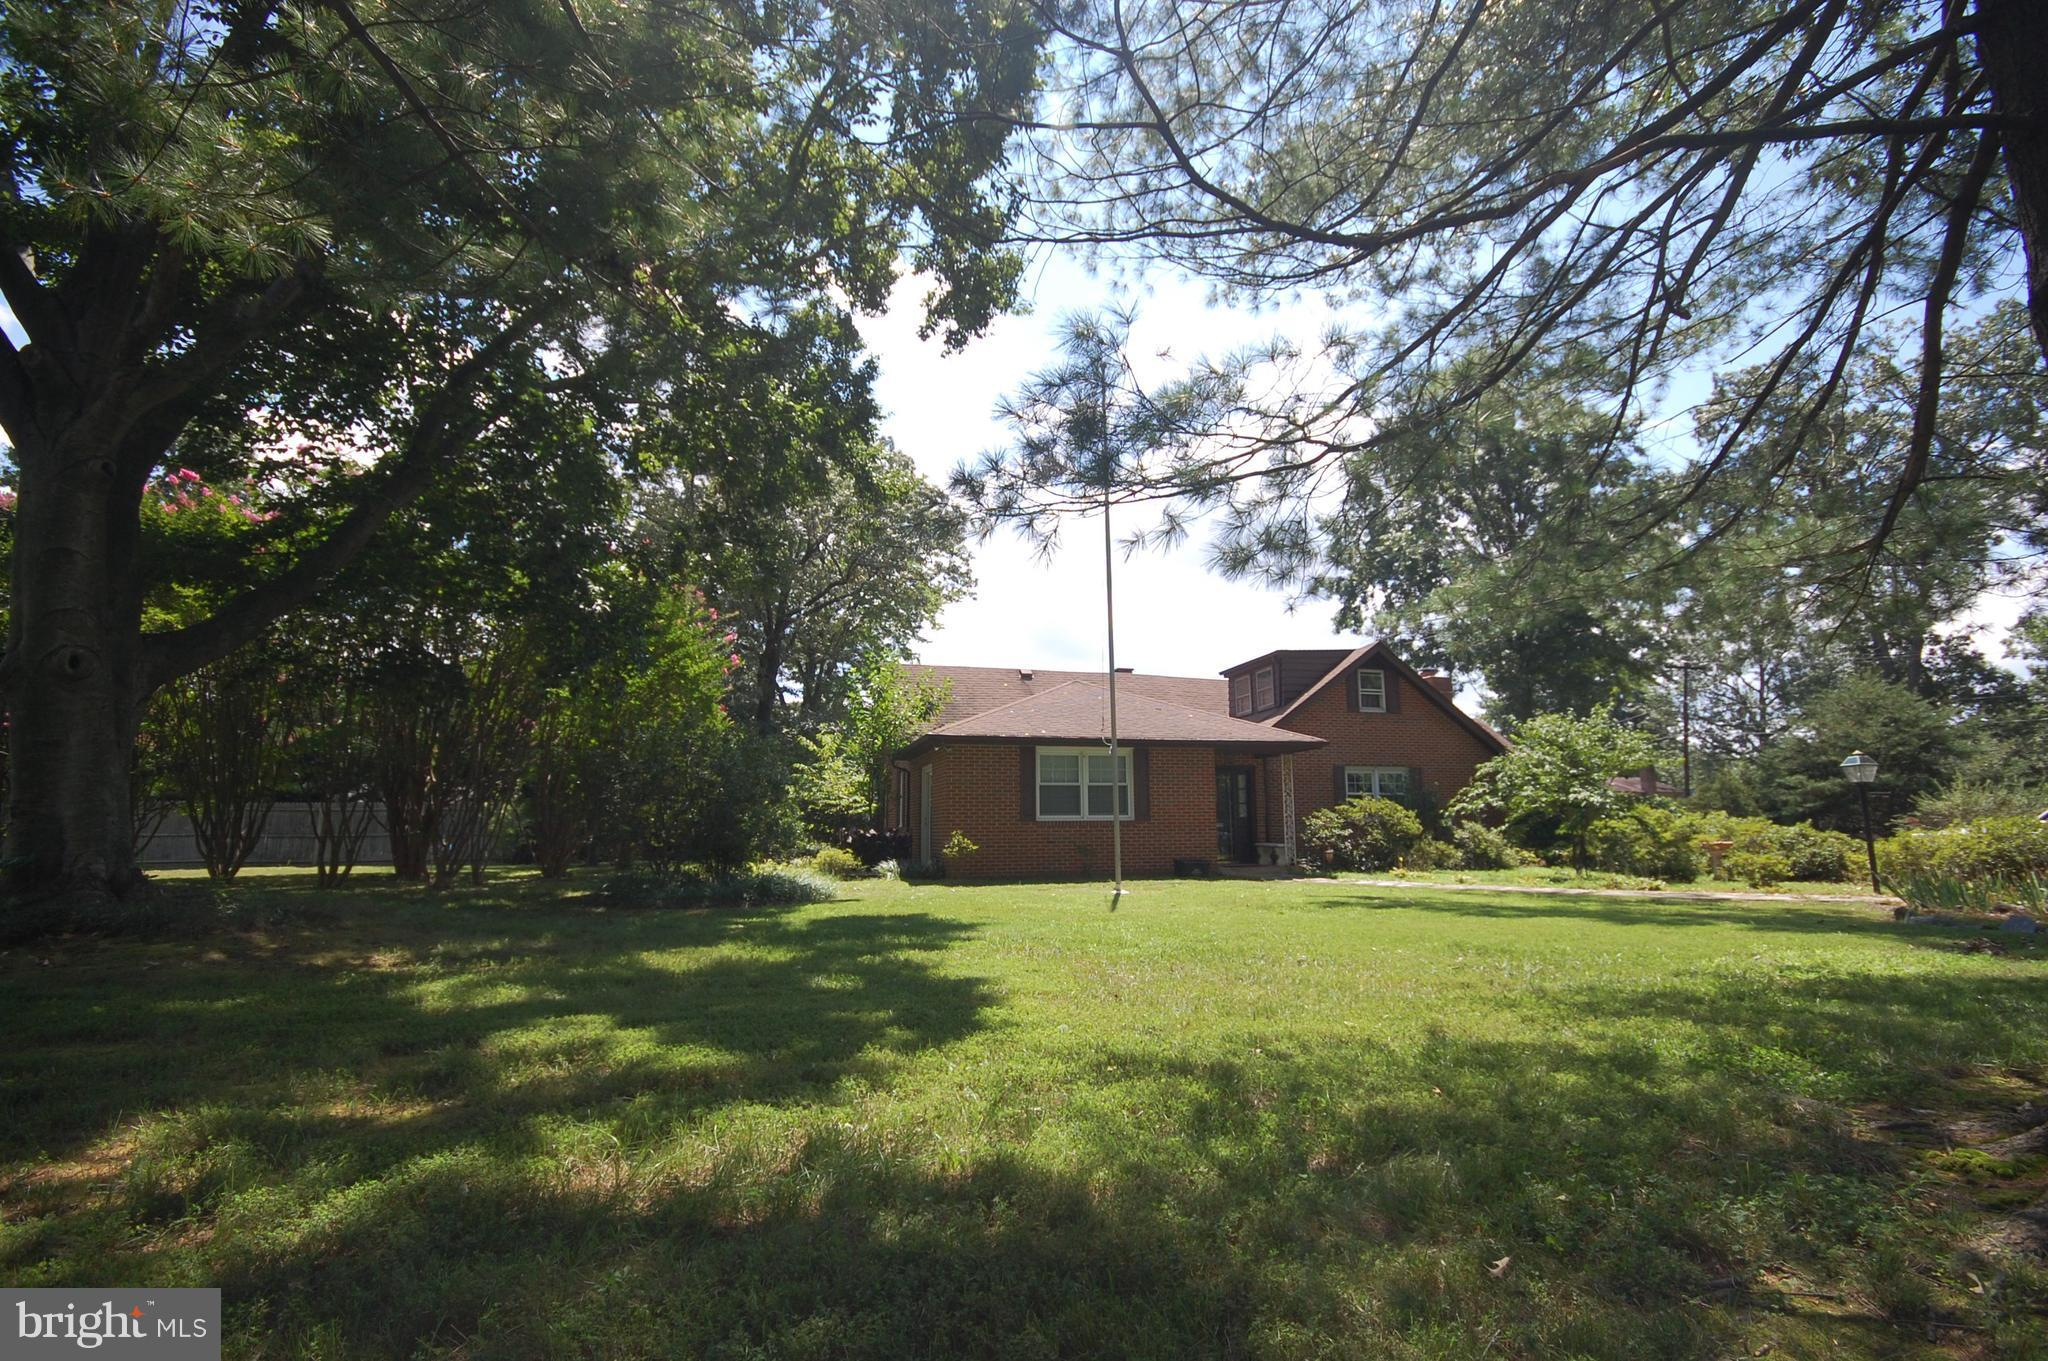 This beautifully  maintained all brick rambler has just been reduced in price.  It's ready for a first-time home buyer or someone who may want to expand and make it their dream home.  The house sits on over a half acre corner lot in a quiet neighborhood.  3 BRs with additional space upstairs (newly carpeted) ideal for workout or home office.  Large LR with brick wood burning fireplace, DR, family/TV room and 4-season room (also newly carpeted).  Utility room and ample storage areas.  Central heat/AC.  Beautiful 20x40 in-ground pool with a new pool motor, picnic area and privacy fencing.  Perfect for entertaining.  Large outdoor custom built 20x10 storage shed.